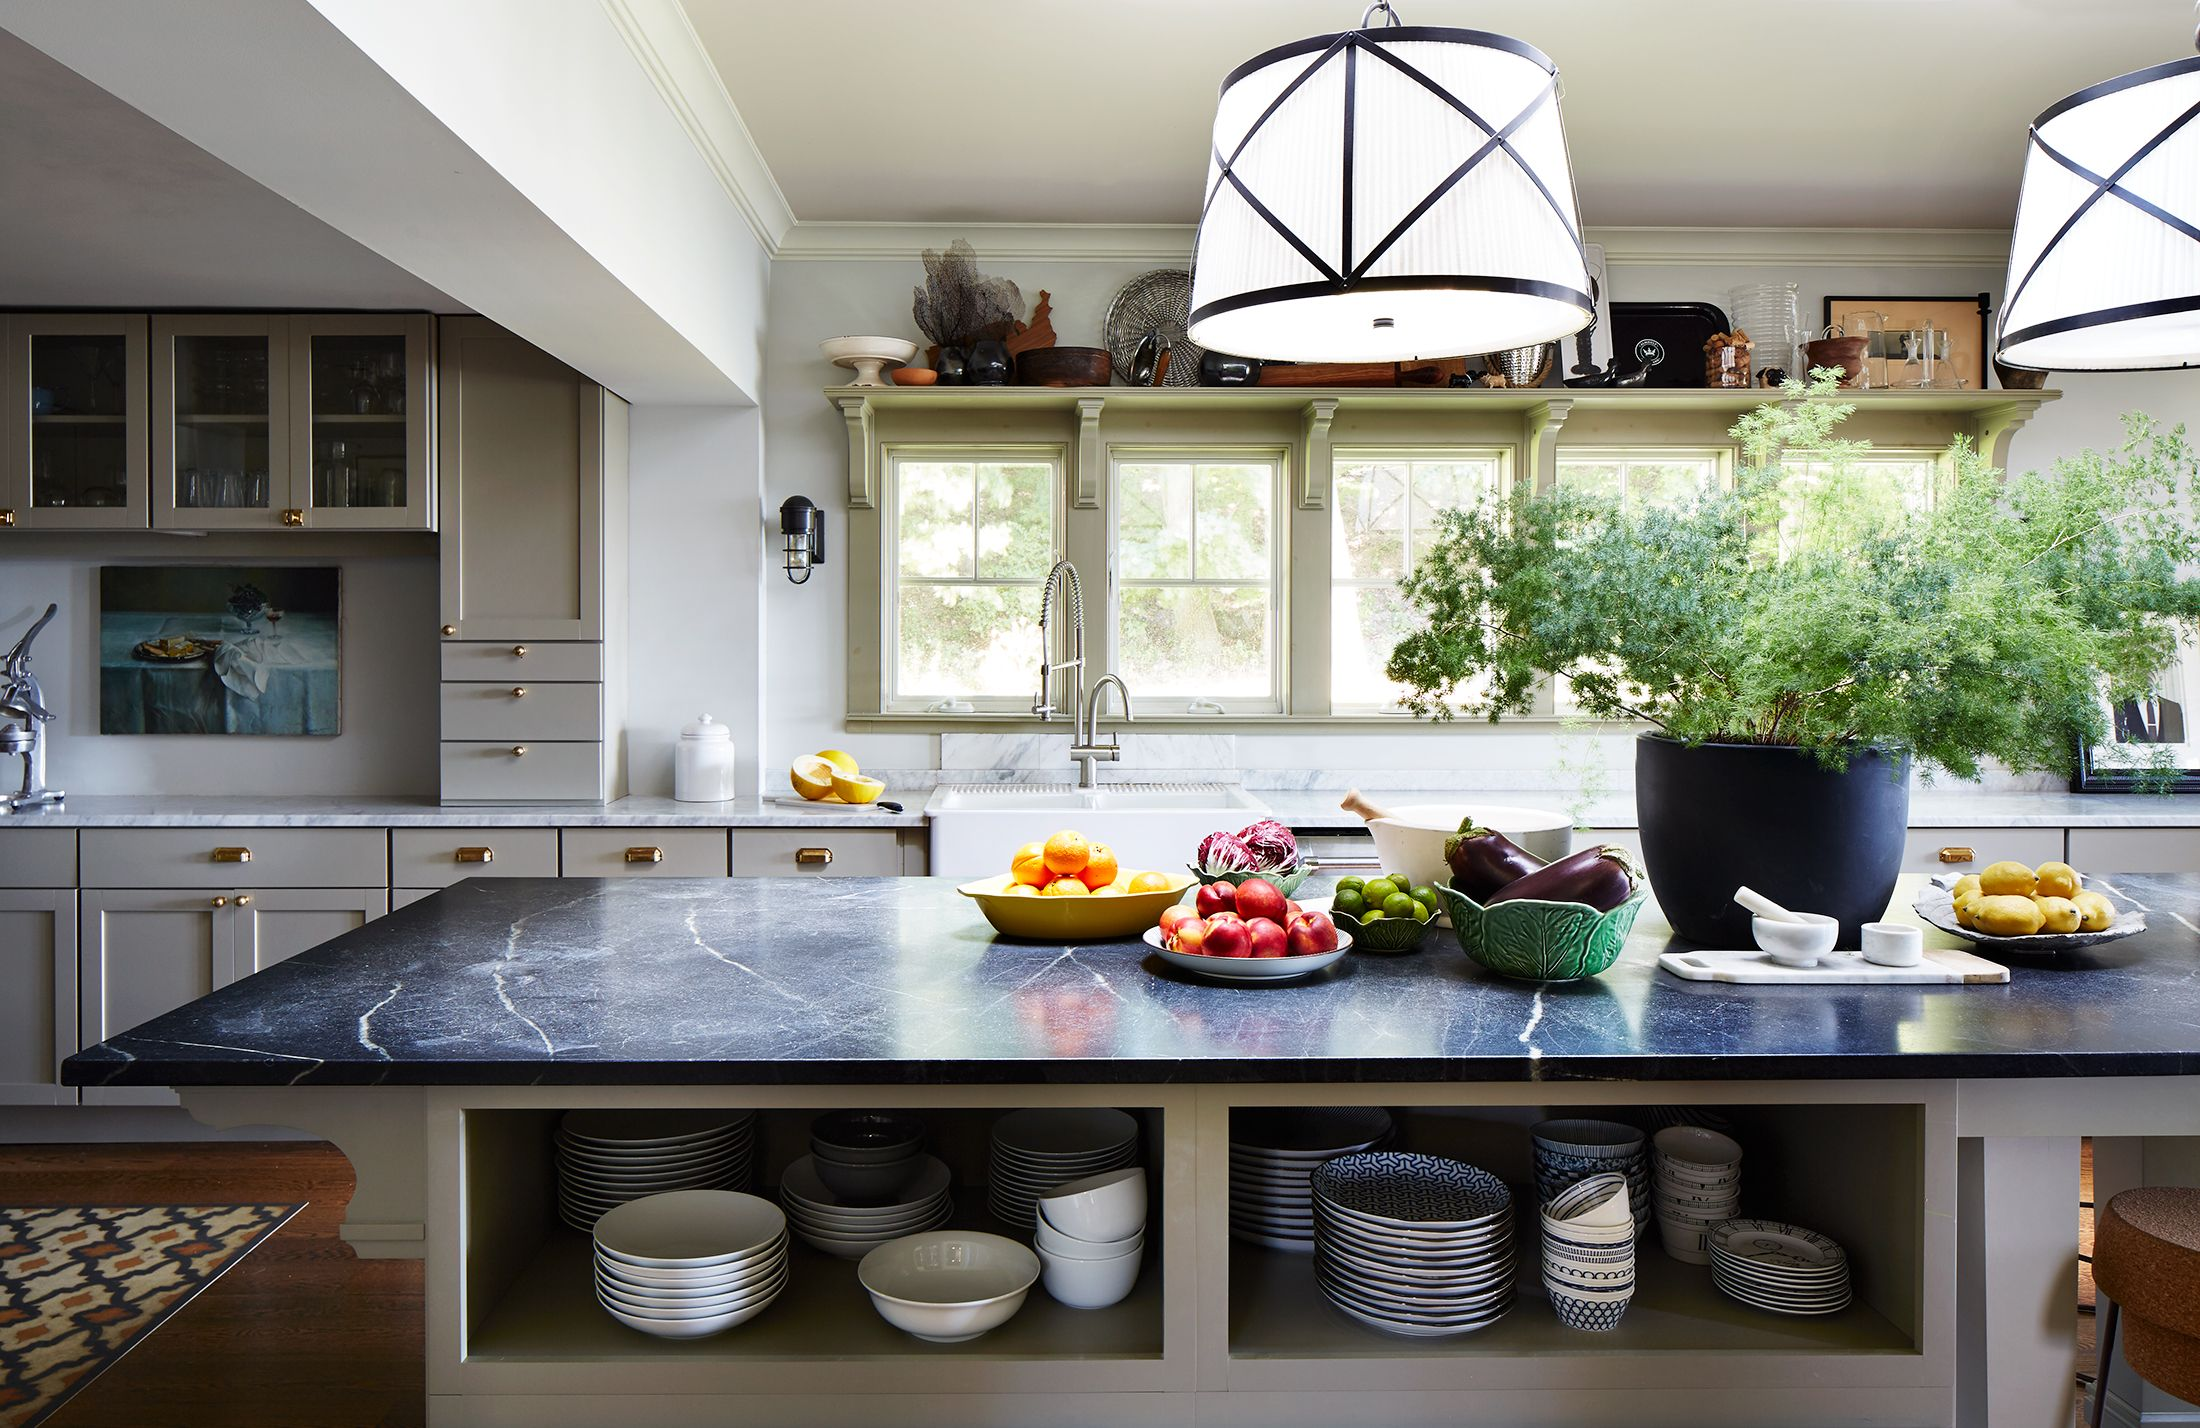 12 Best Kitchen Island Ideas - Stylish & Unique Kitchen Island